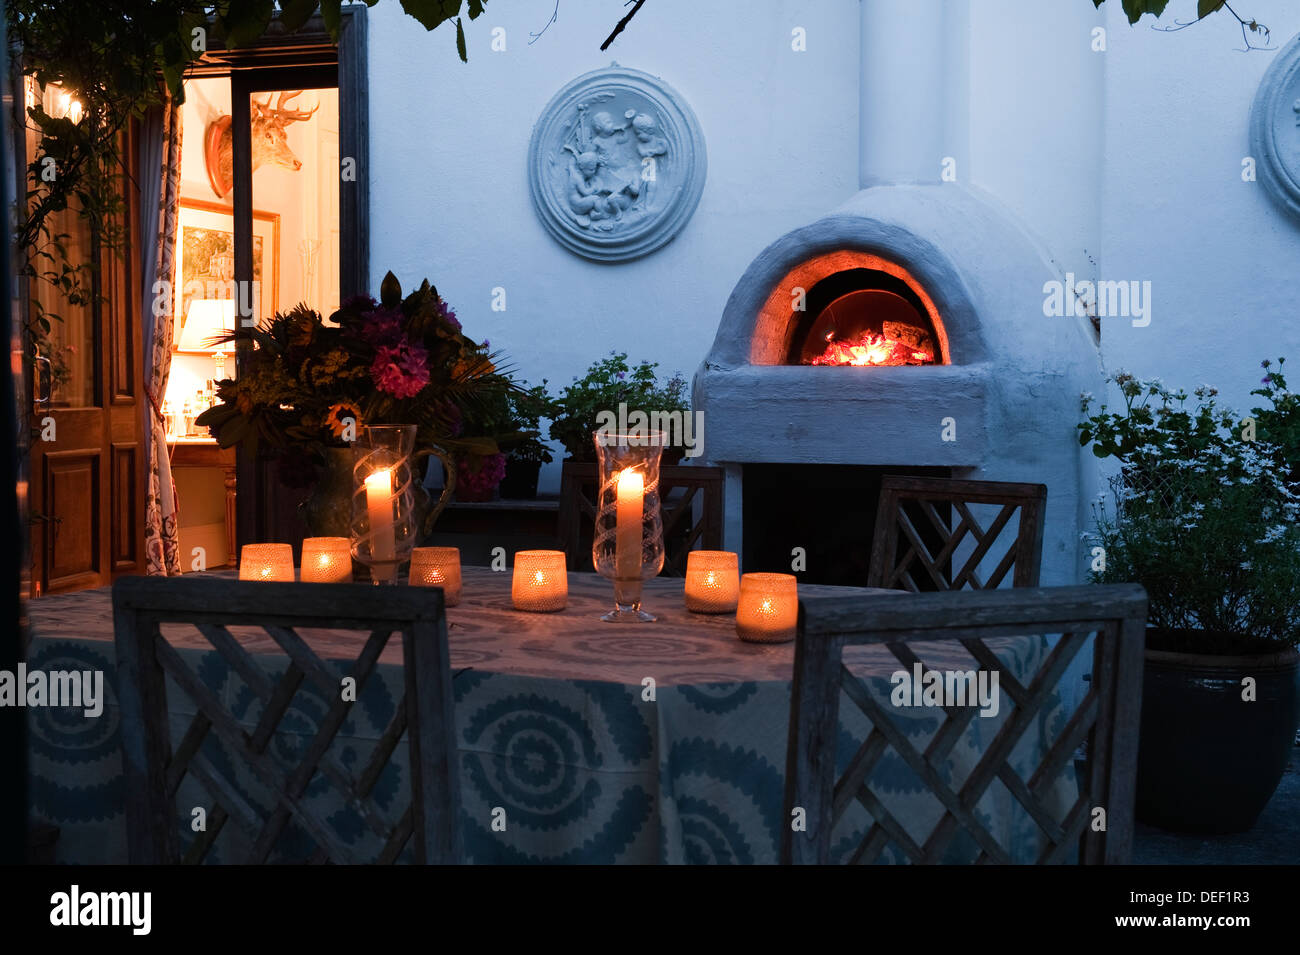 Lit Candles On Patio Table Of Country Residence